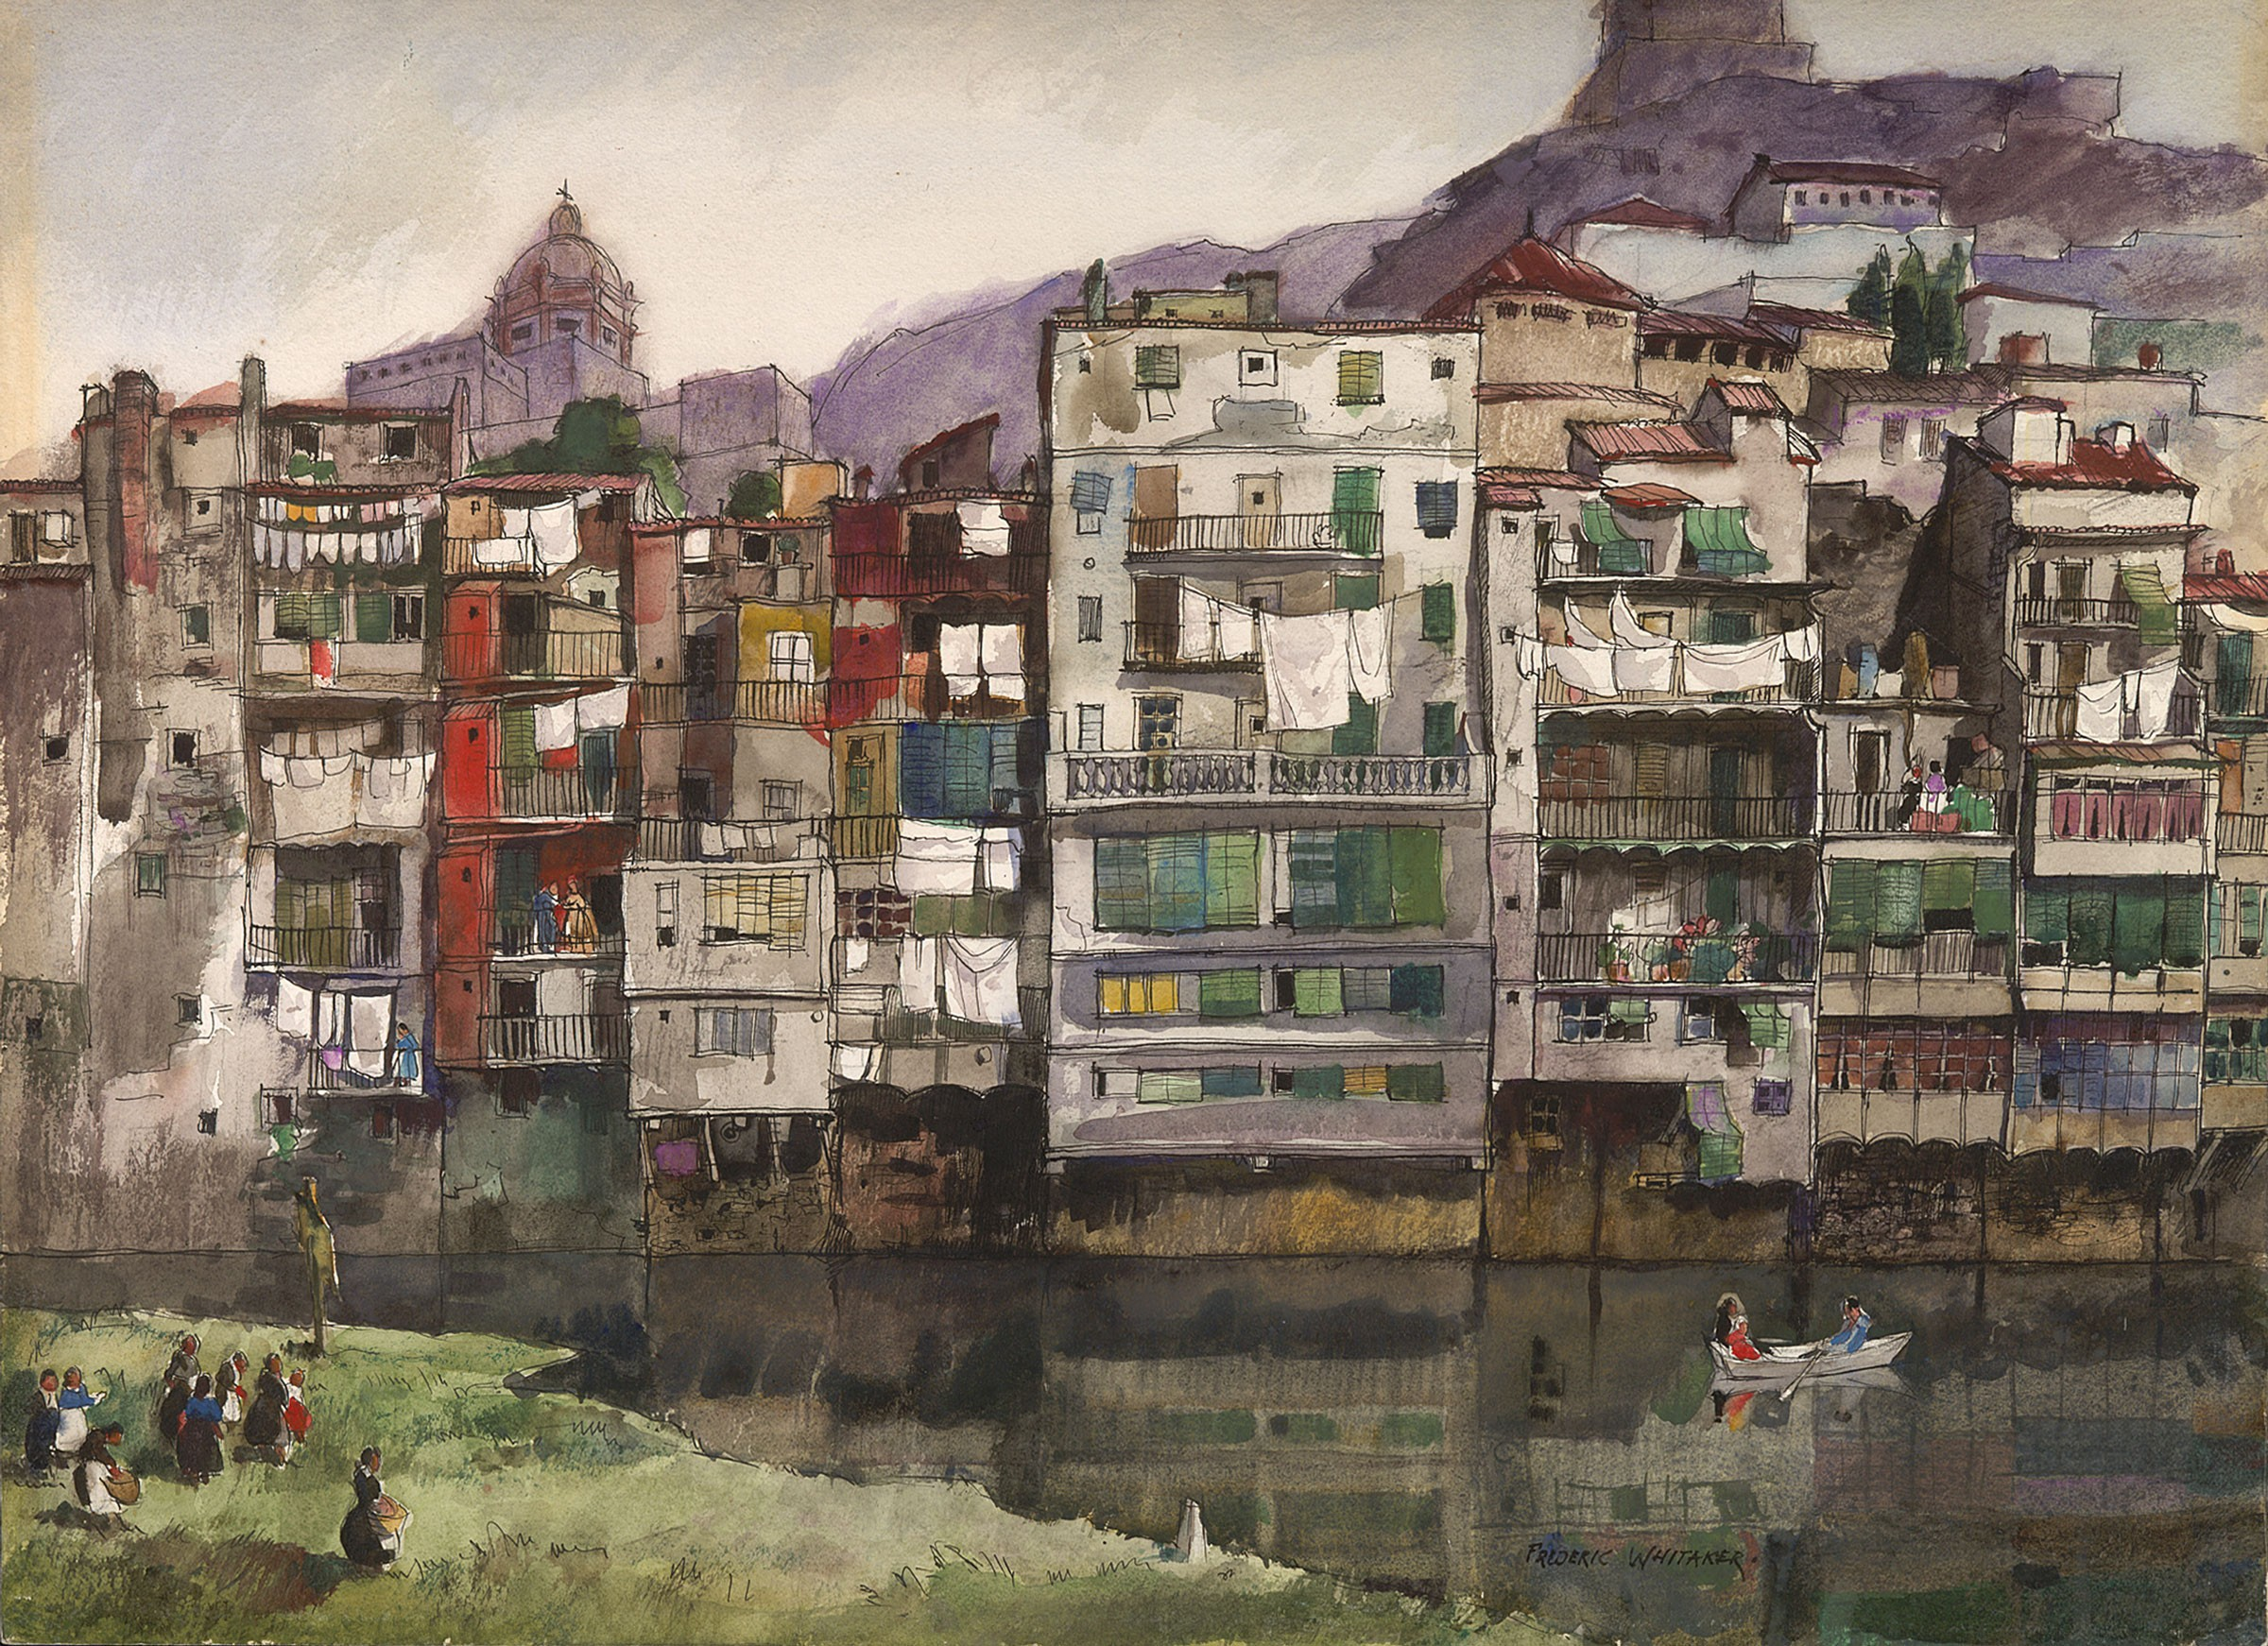 """Houses on a Hillside"" 1958 © Frederic Whitaker 22x30 inches Watercolor"